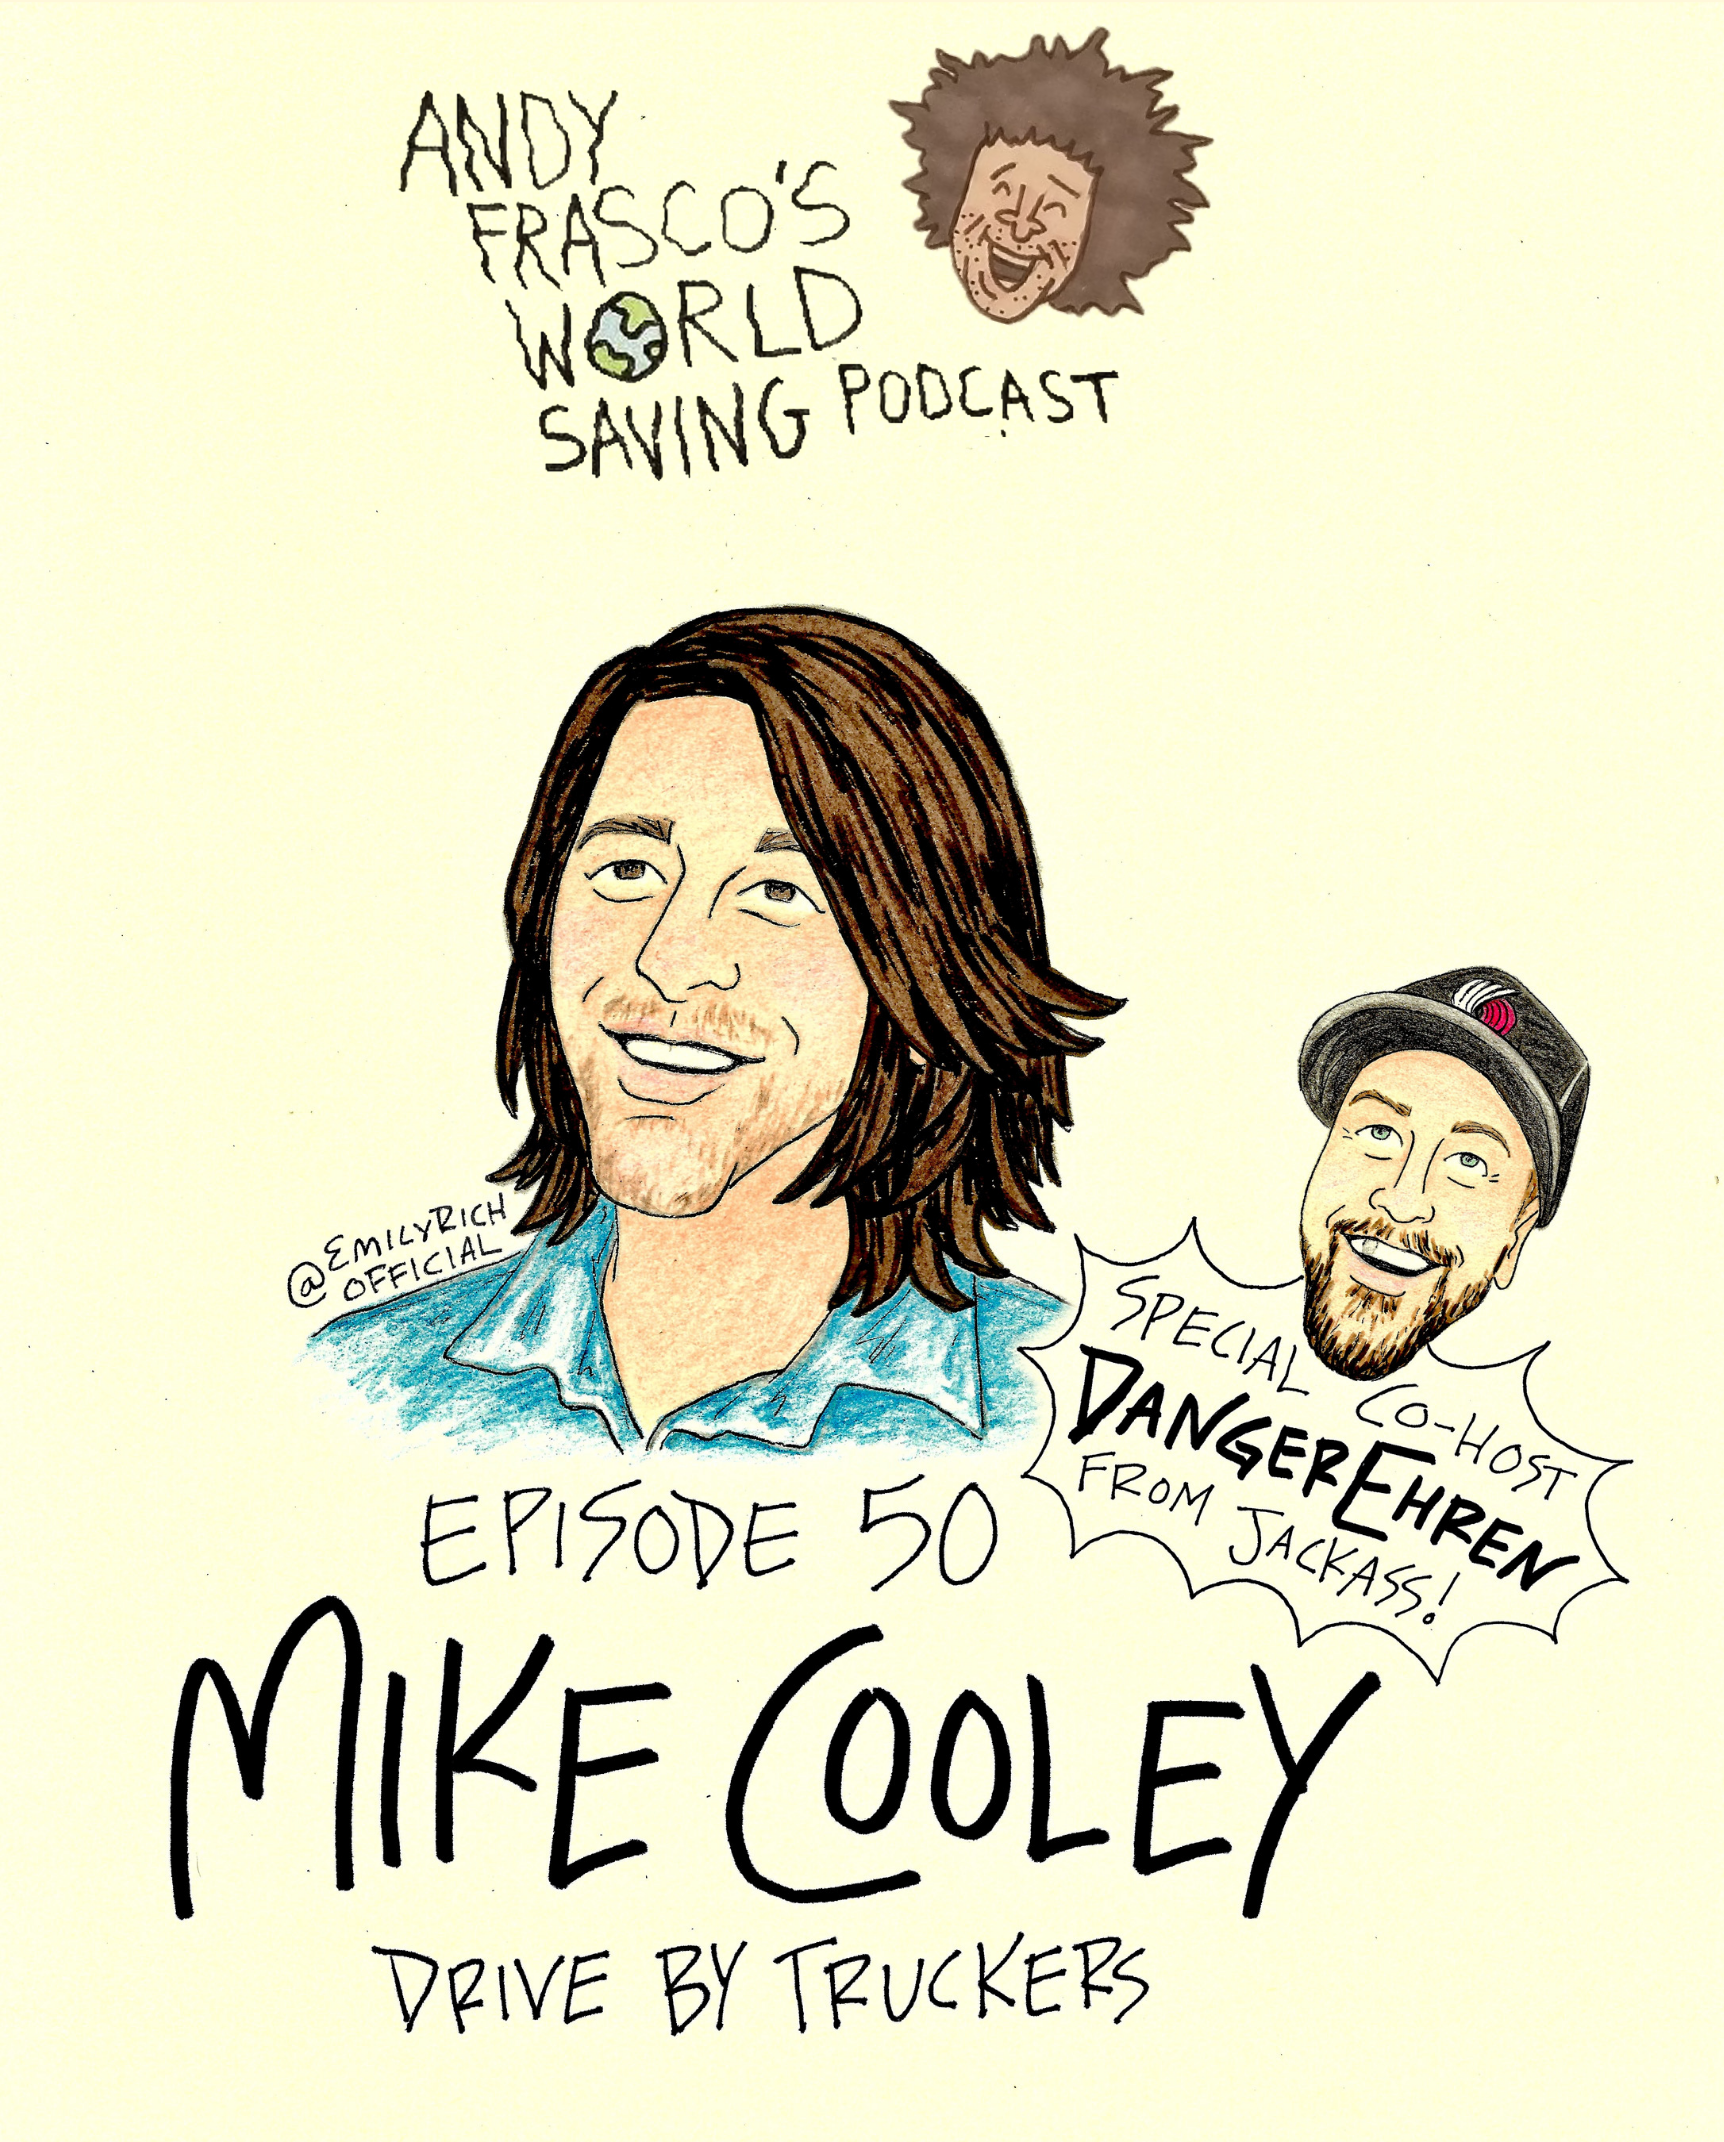 Ep 50 Mike Cooley.png